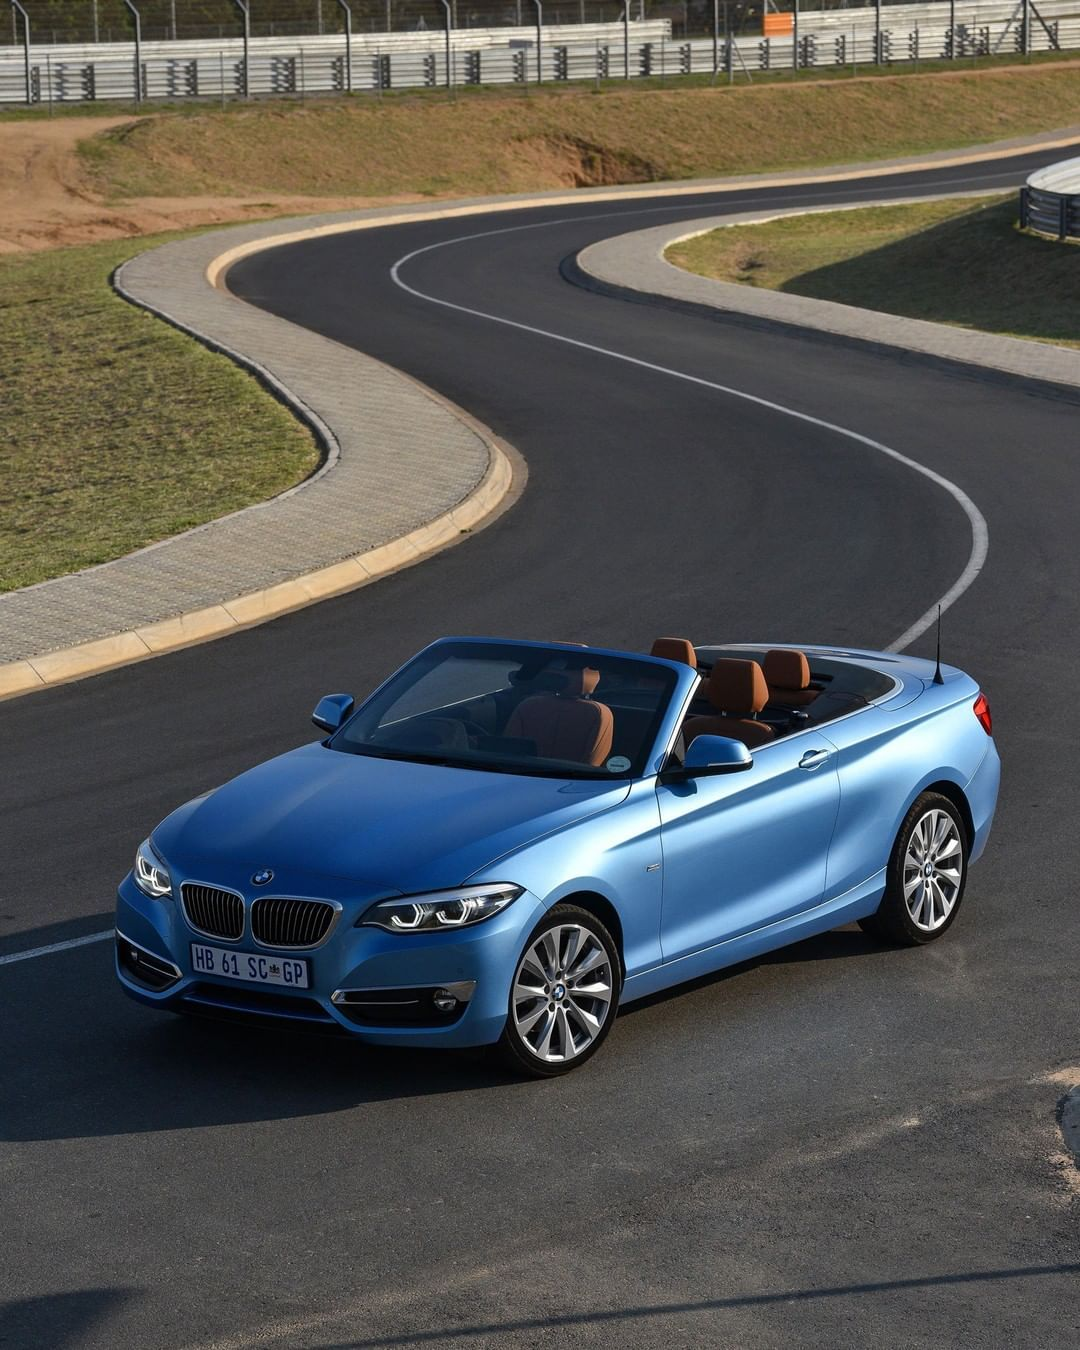 Image May Contain Car And Outdoor Bmw Convertible Bmw Bmw M4 Coupe